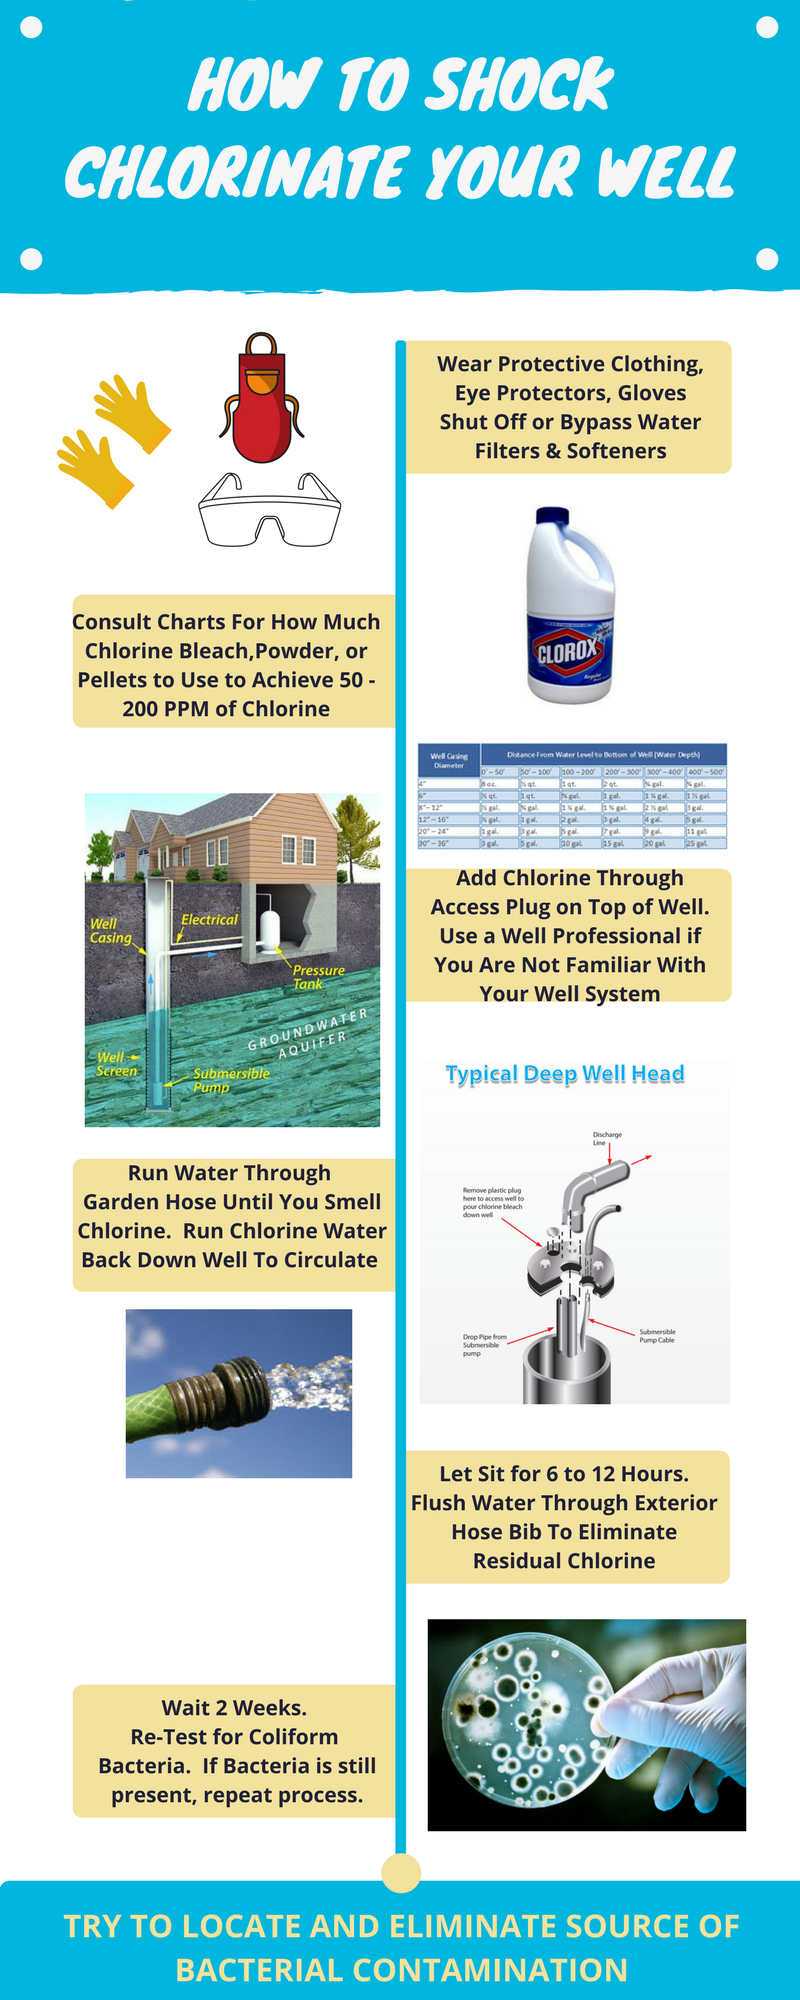 How To Shock Chlorinate Sanitize Wells Water Treatment Iron Filter Water Well